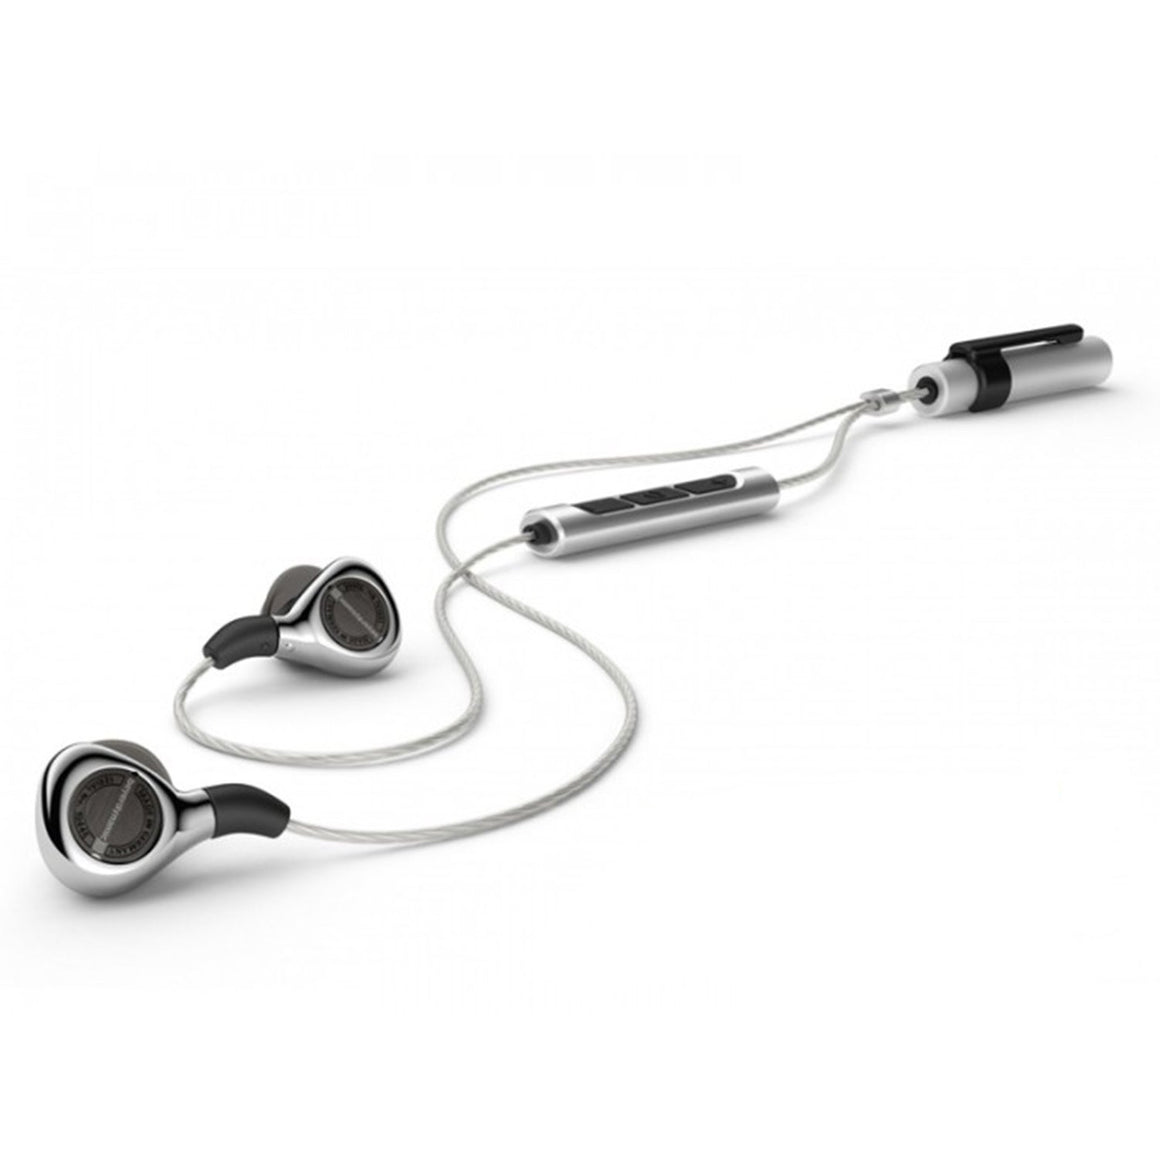 Beyerdynamic Xelento Wireless In Ear Headphones at Melbourne Hi Fi, Australia